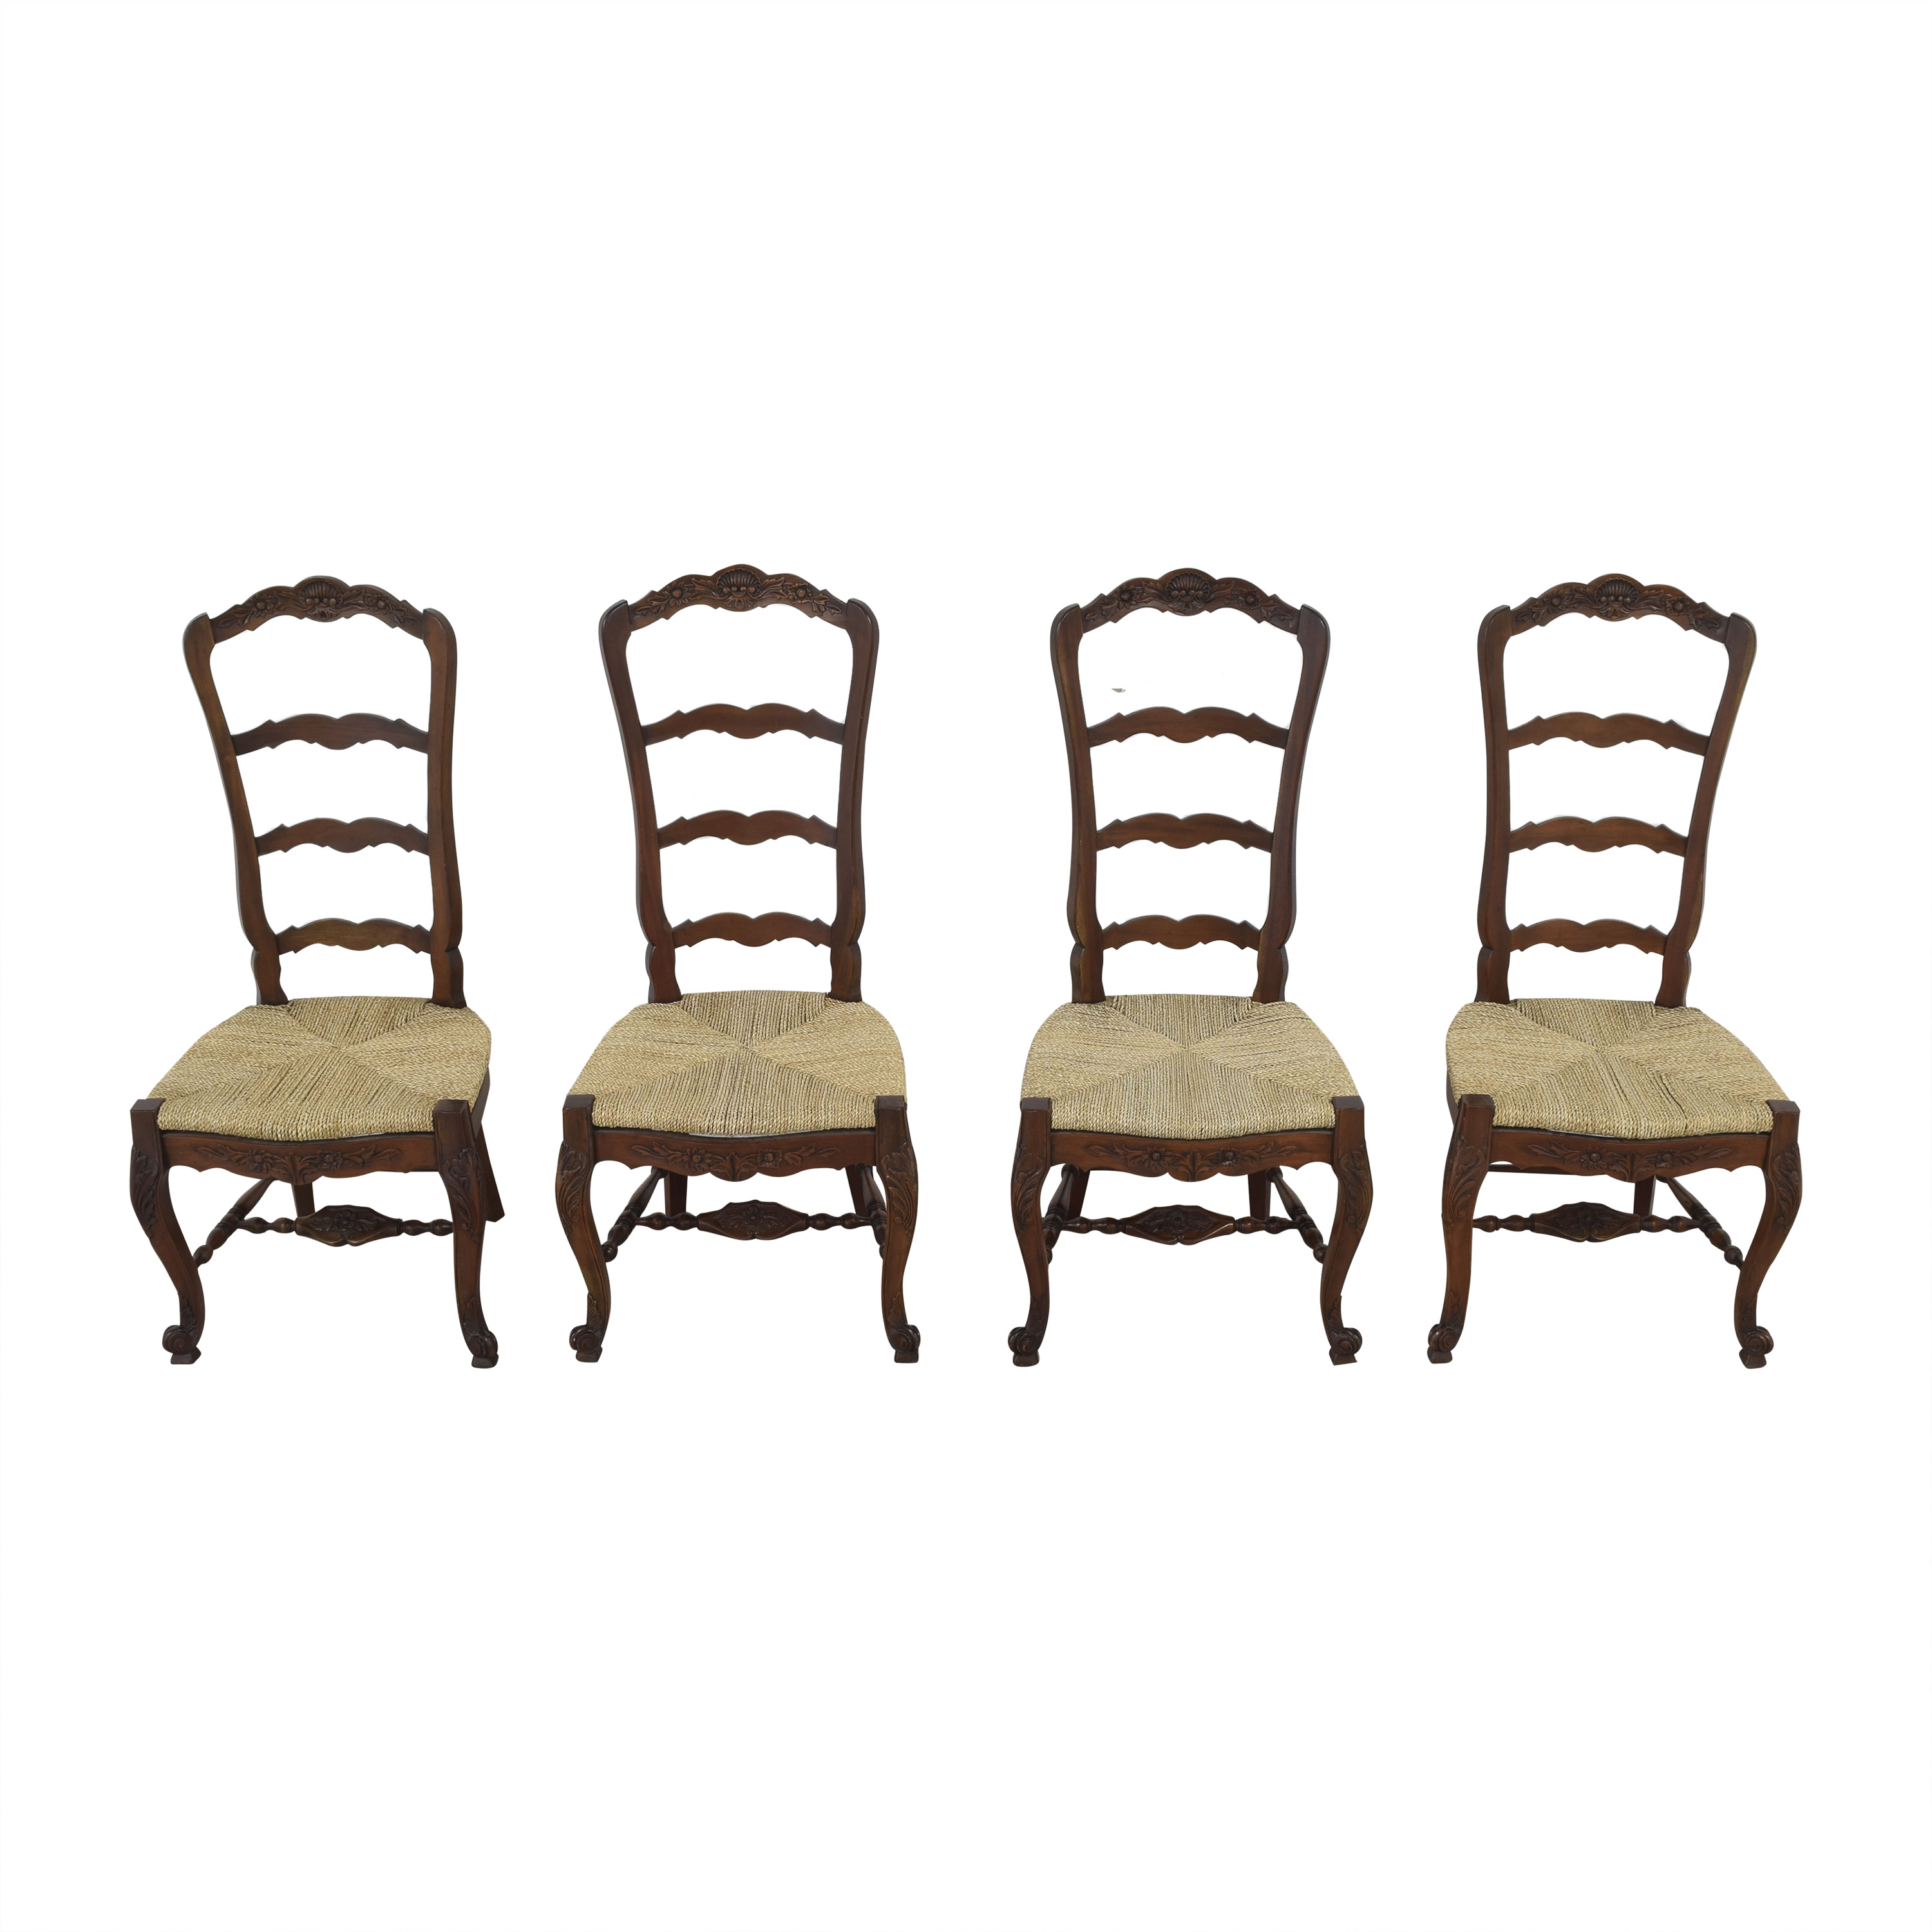 Marie Albert French Country Ladder Back Dining Chairs Marie Albert